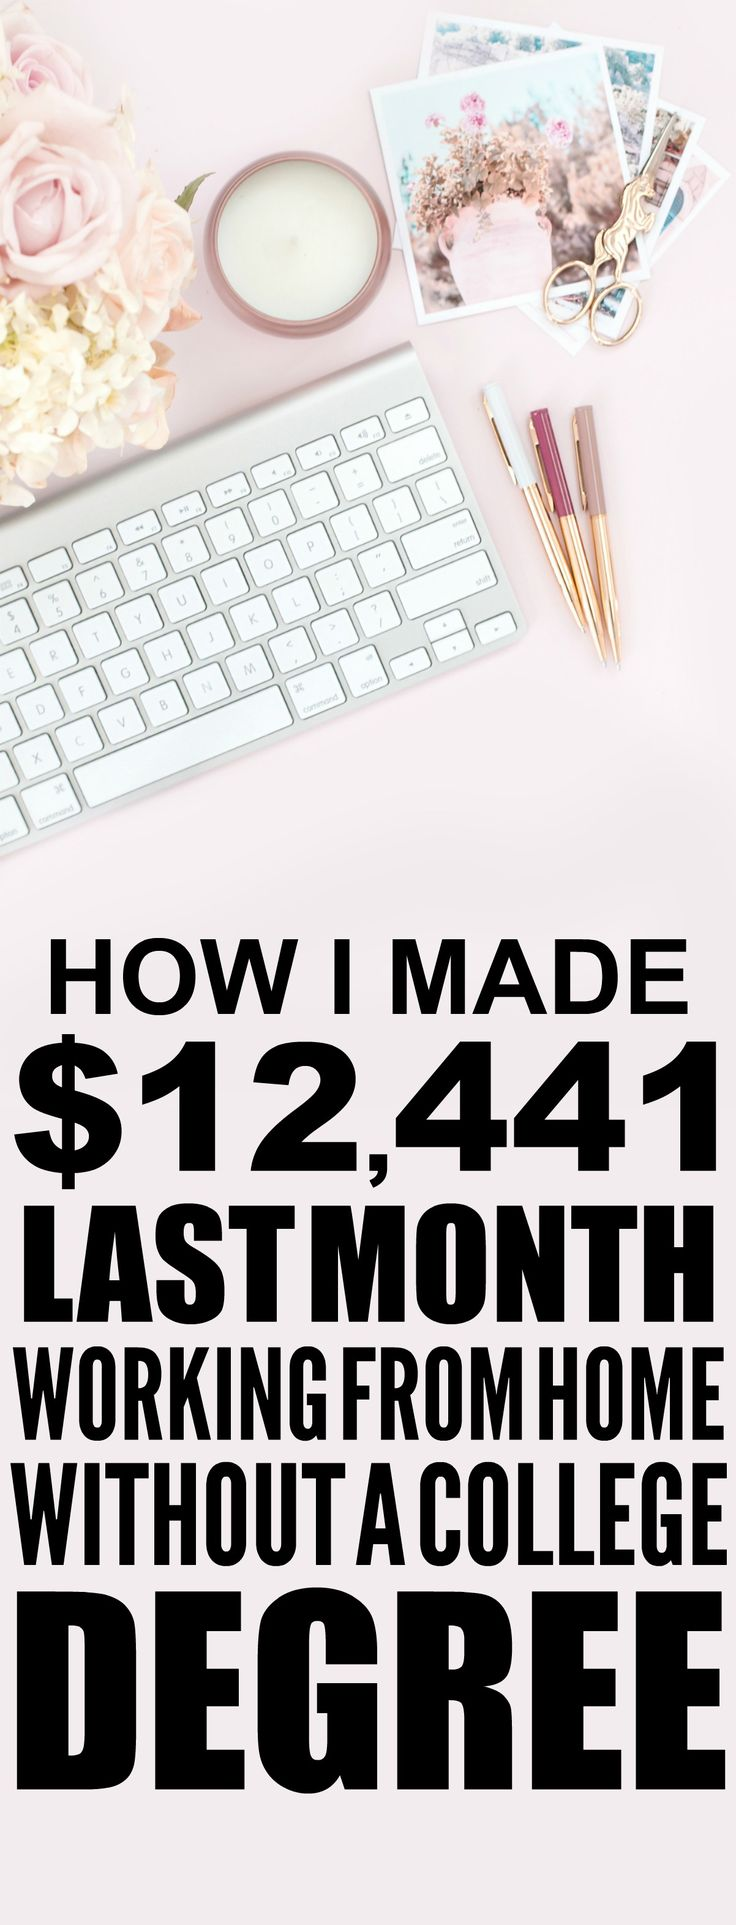 How she made $12,441 online last month is SO COOL! I'm so happy I found these AMAZING tips! Now I have a great way to make money online and work from home! I never thought about how to blog before. Definitely pinning!